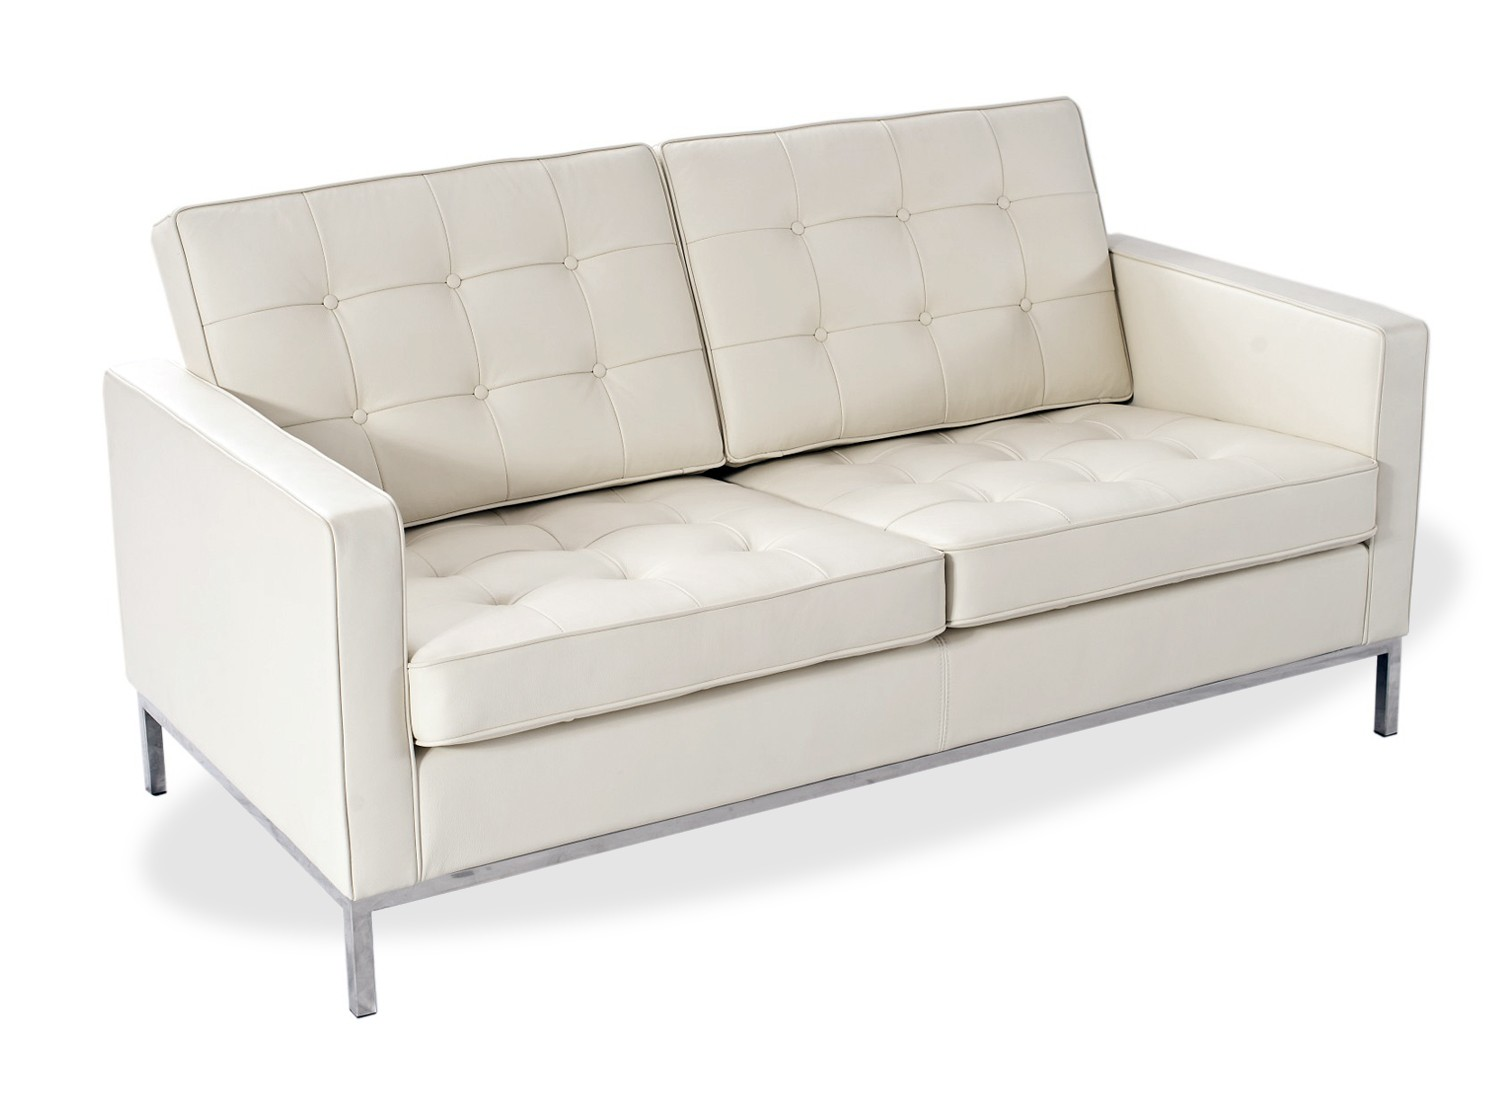 Möbel Ludwig Sofas Rohe Couch Florence 2 Seat Sofa Design Bett And Sofa